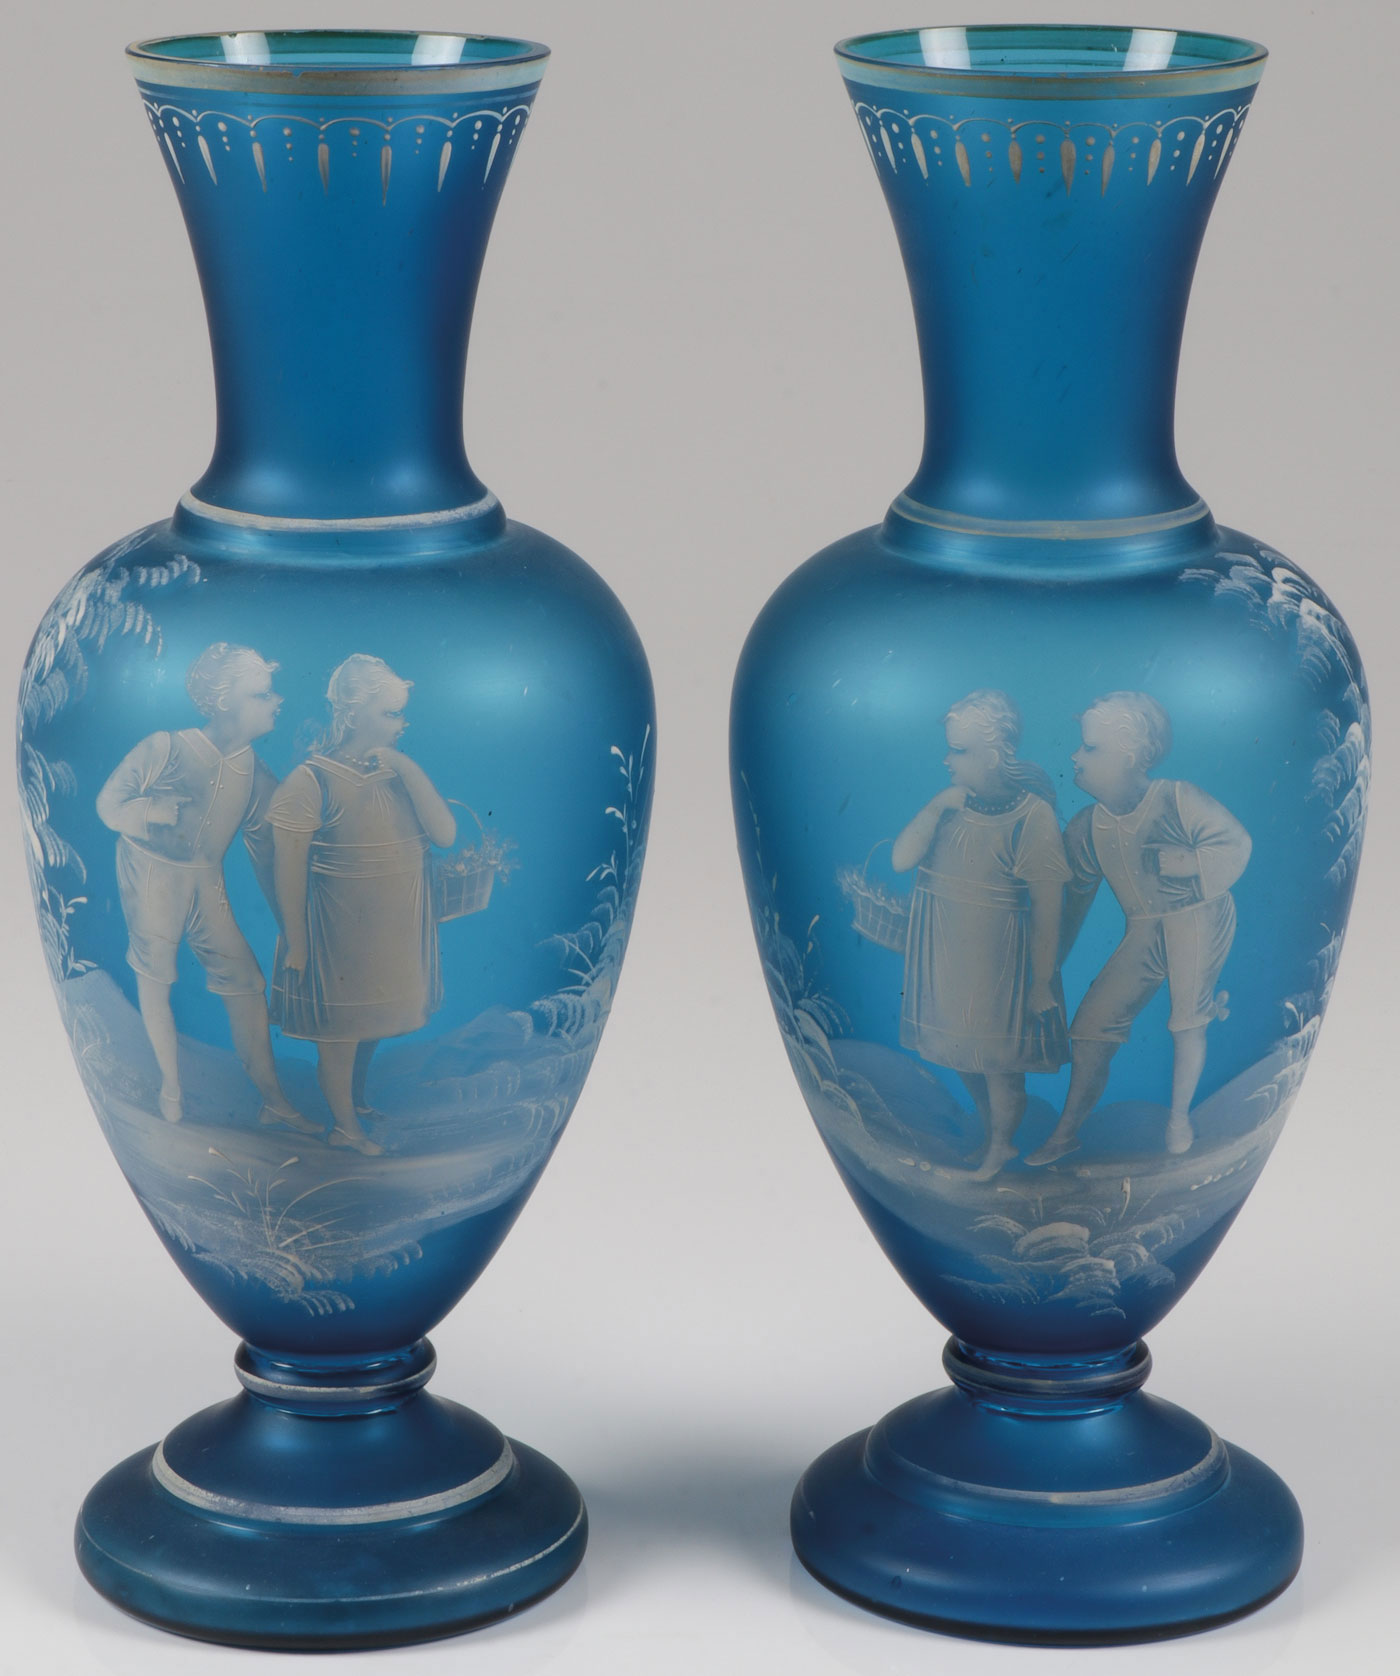 Lot 55 - EXCEPTIONAL PAIR MARY GREGORY MANTEL VASES